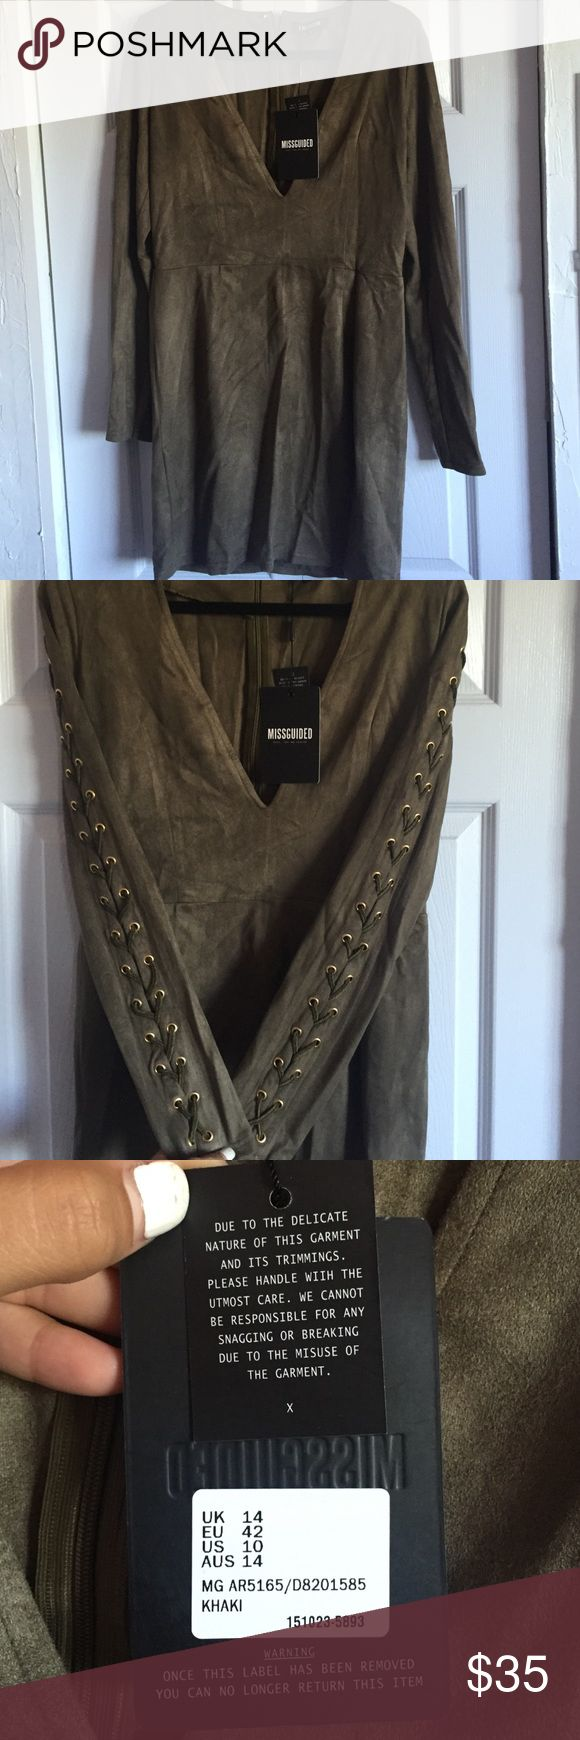 Missguided Dress Khaki size US 10 . NWT . I payed 37.50 online. Too big for me but a really pretty dress to go out in. Missguided Dresses Midi